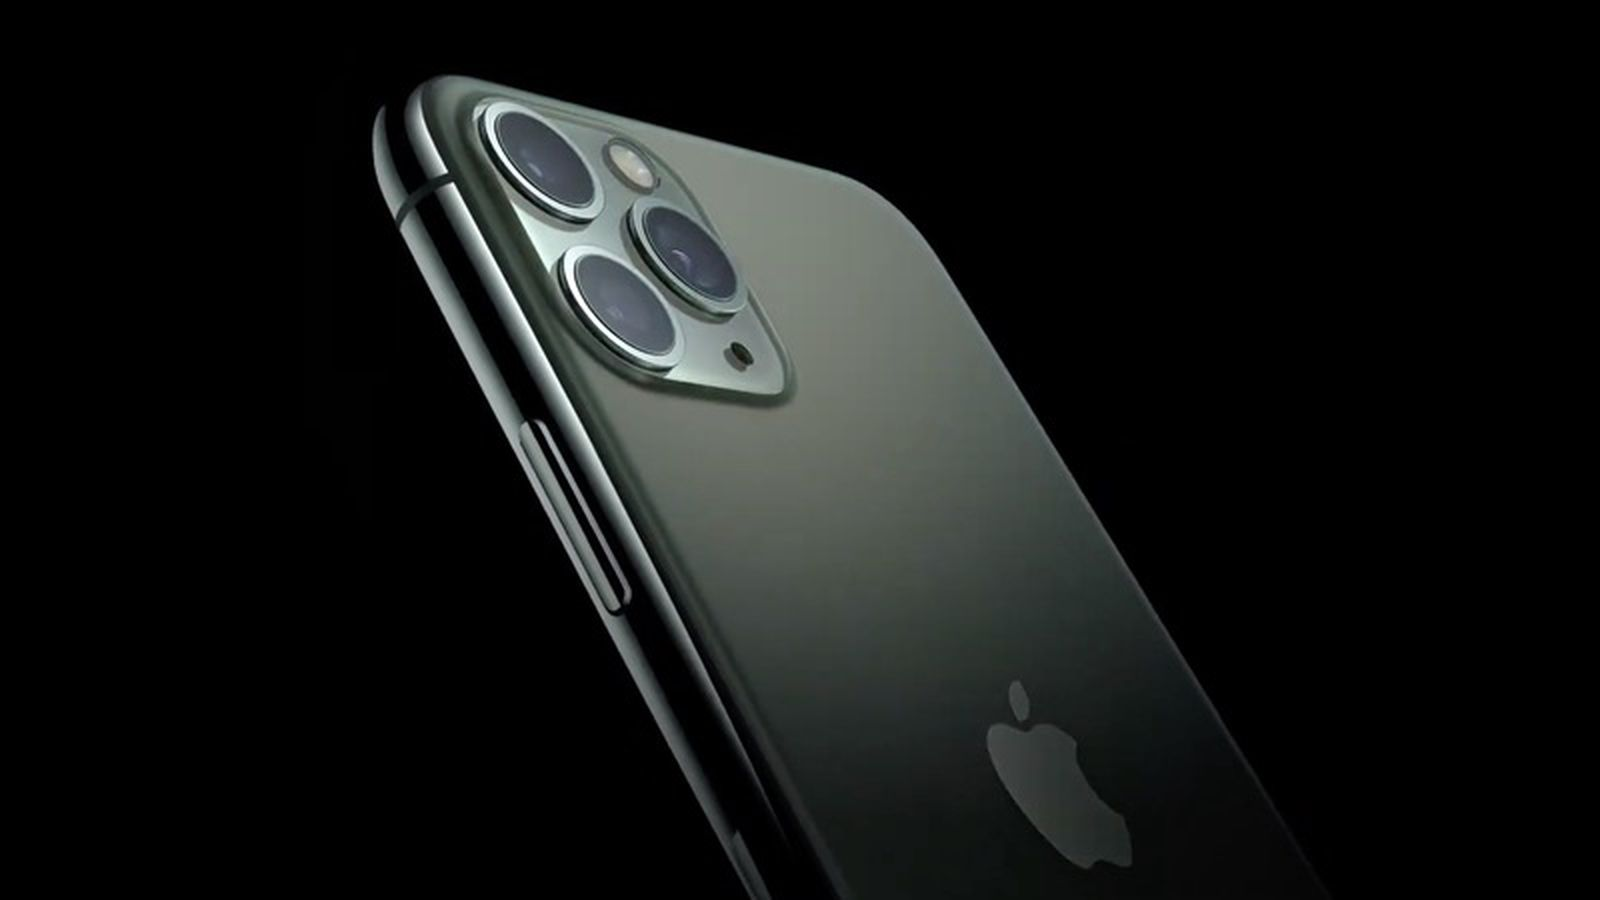 Apple Announces Iphone 11 Pro And Iphone 11 Pro Max With Triple Lens Rear Camera And Midnight Green Color Macrumors